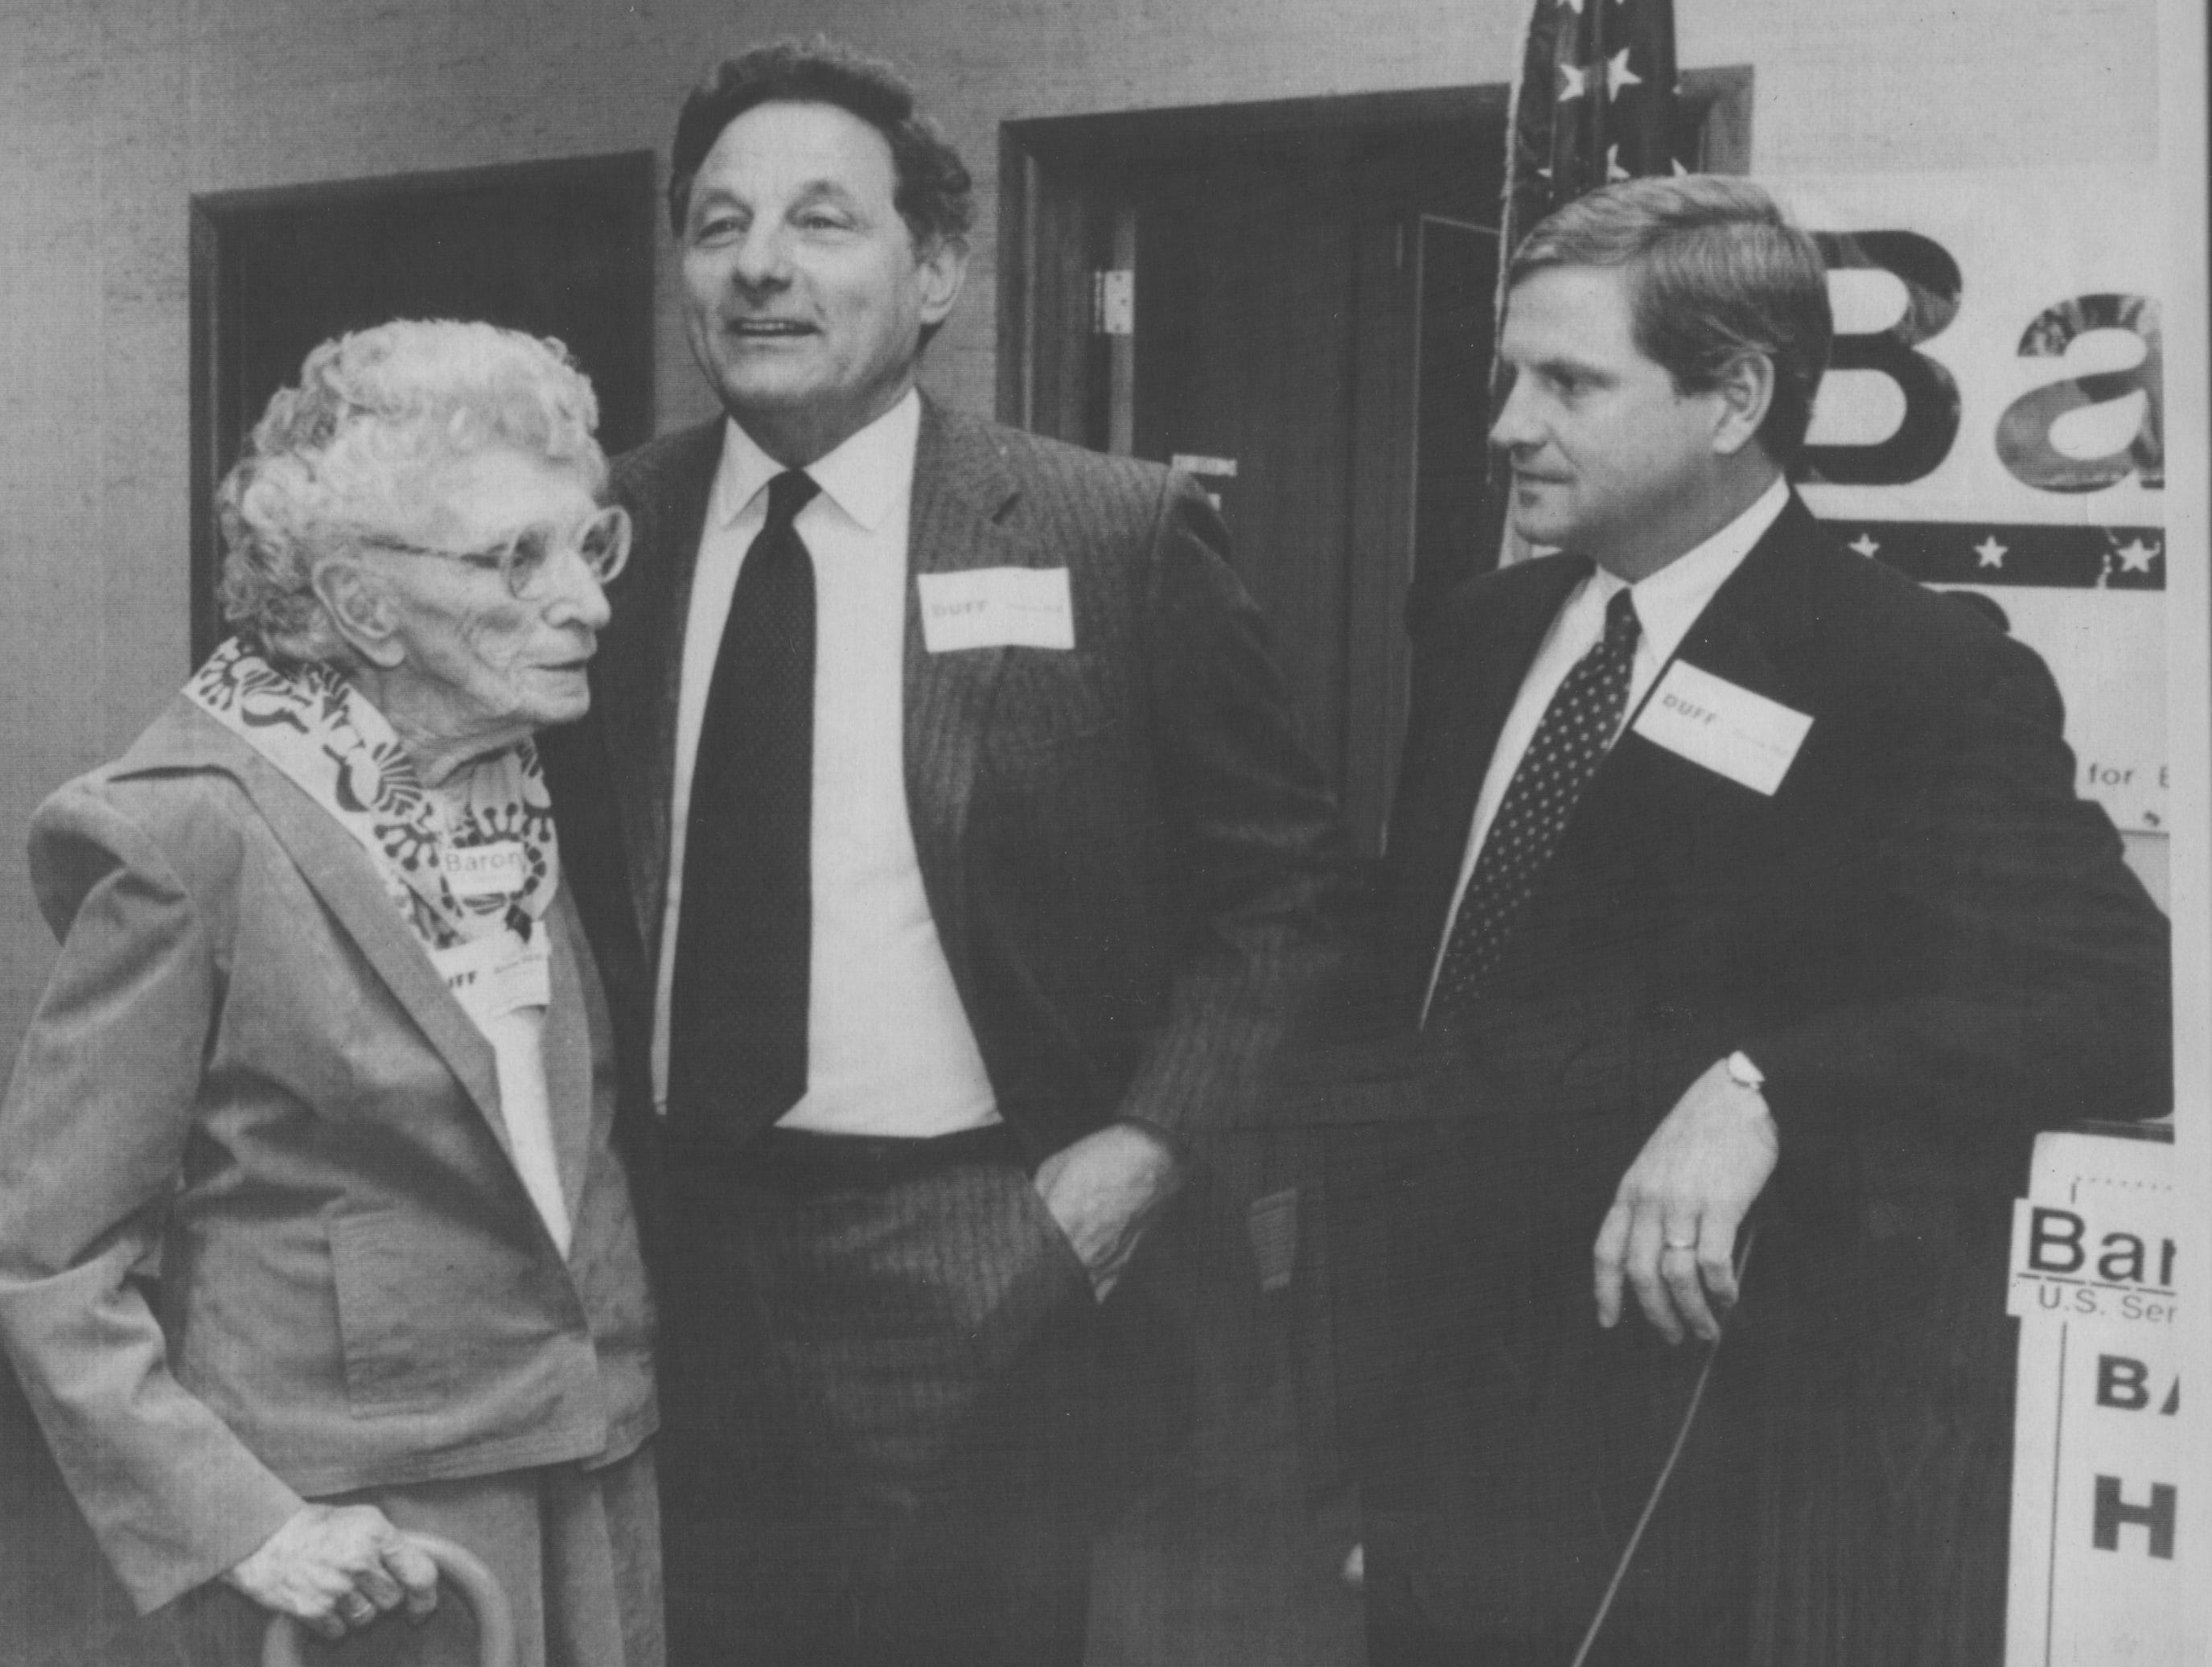 Indianapolis-Former Sen. Birch Bayh, D-Ind., (center) campaigns for Democratic senatorial candidate Baron Hill as they meet Agnes Shepard, 99, of Linton, Ind., at a rally in Indianapolis Monday. Hill is running against Republican incumbent Dan Coats. (11/5/1990)